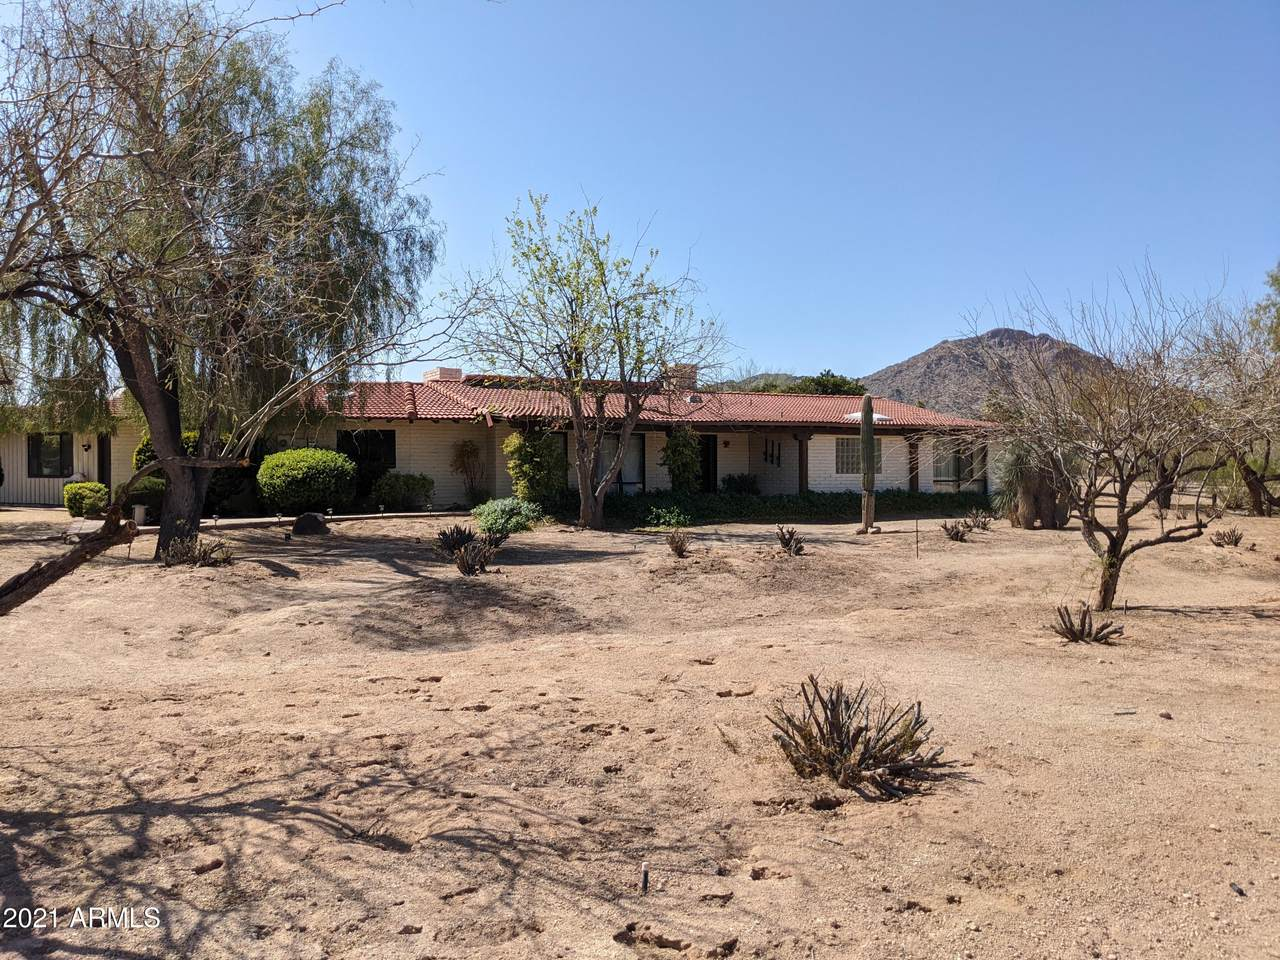 6619 Ocotillo Road - Photo 1